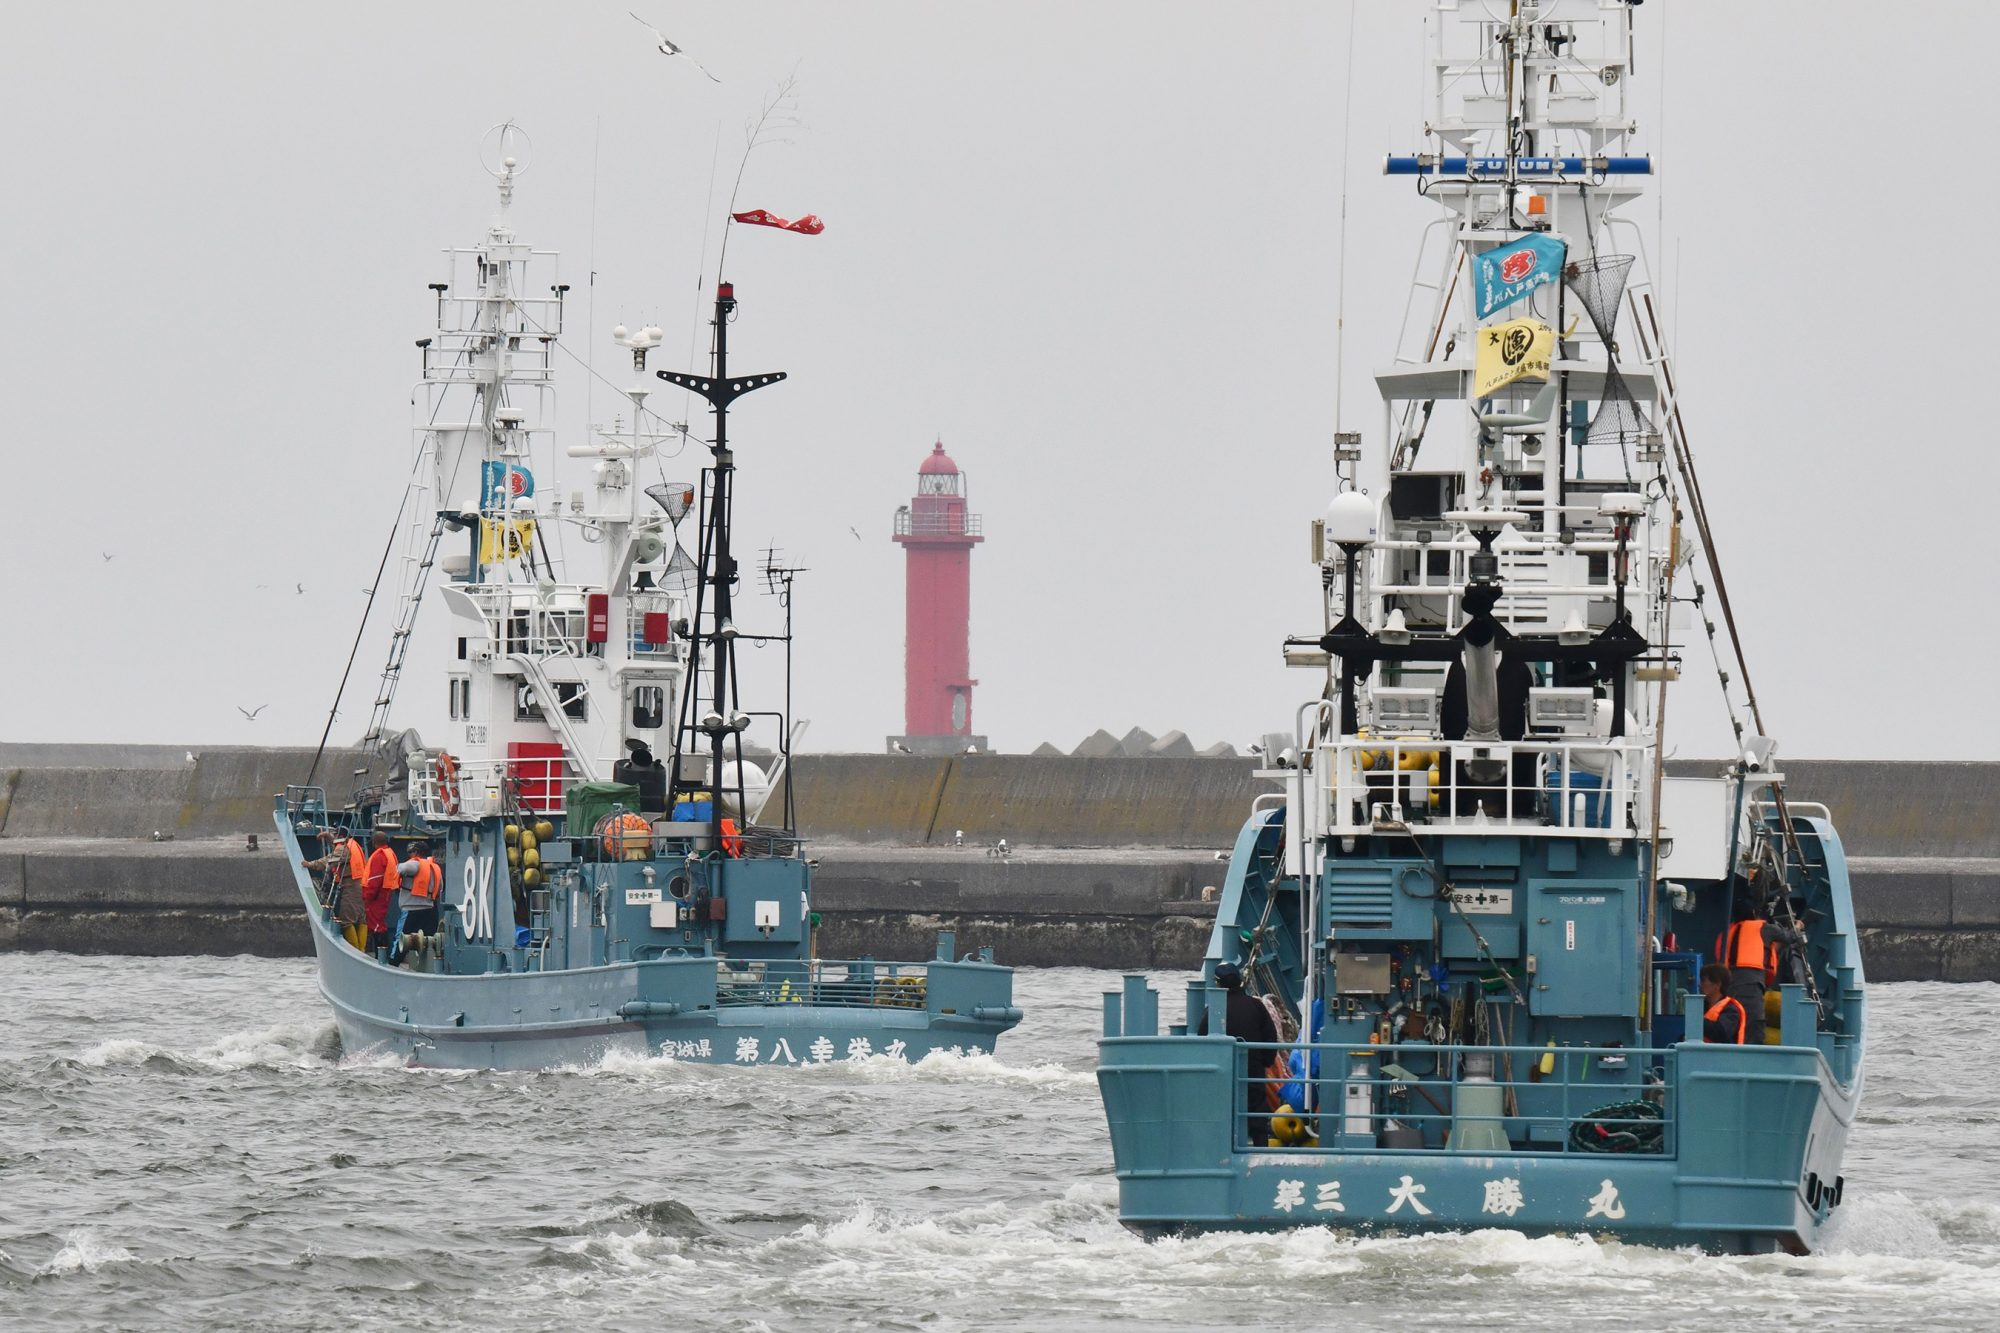 Japanese whalers brought ashore their first catches on July 1 as they resumed commercial hunting after a three-decade hiatus, brushing aside criticism from activists who say the practice is cruel and outdated